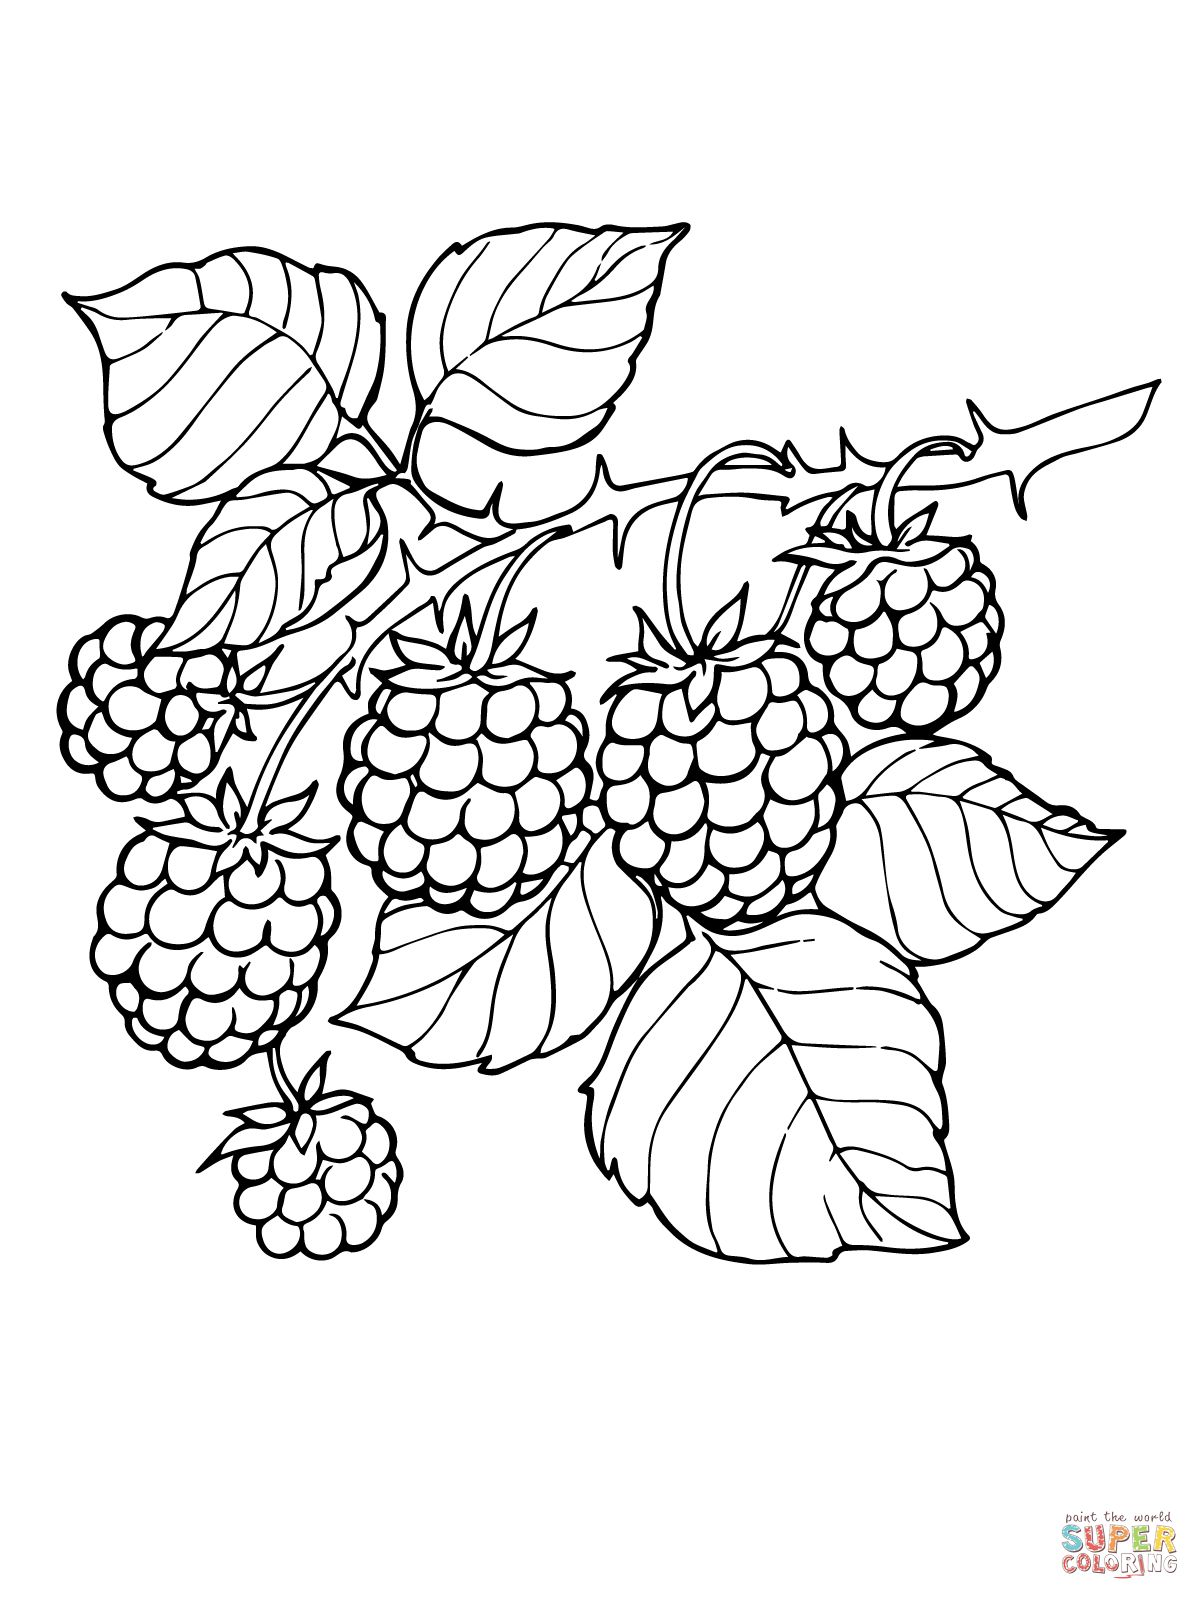 Blackberry Branch coloring page | SuperColoring.com | Food, Drink ...